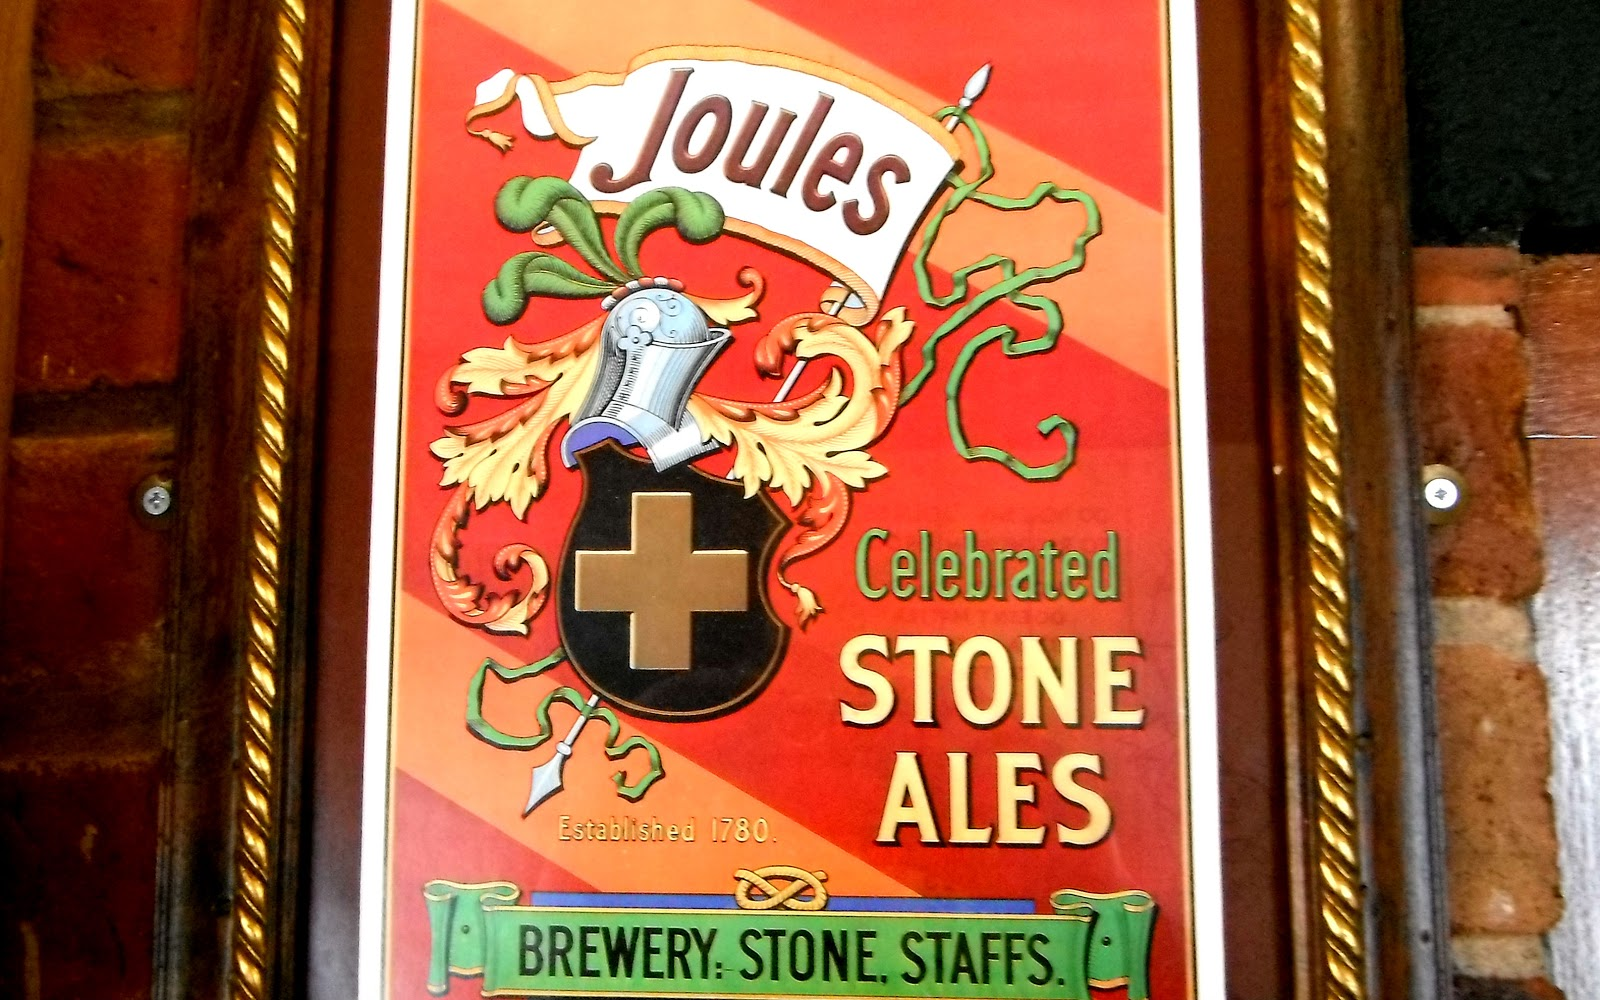 Vintage poster for Joules Ales